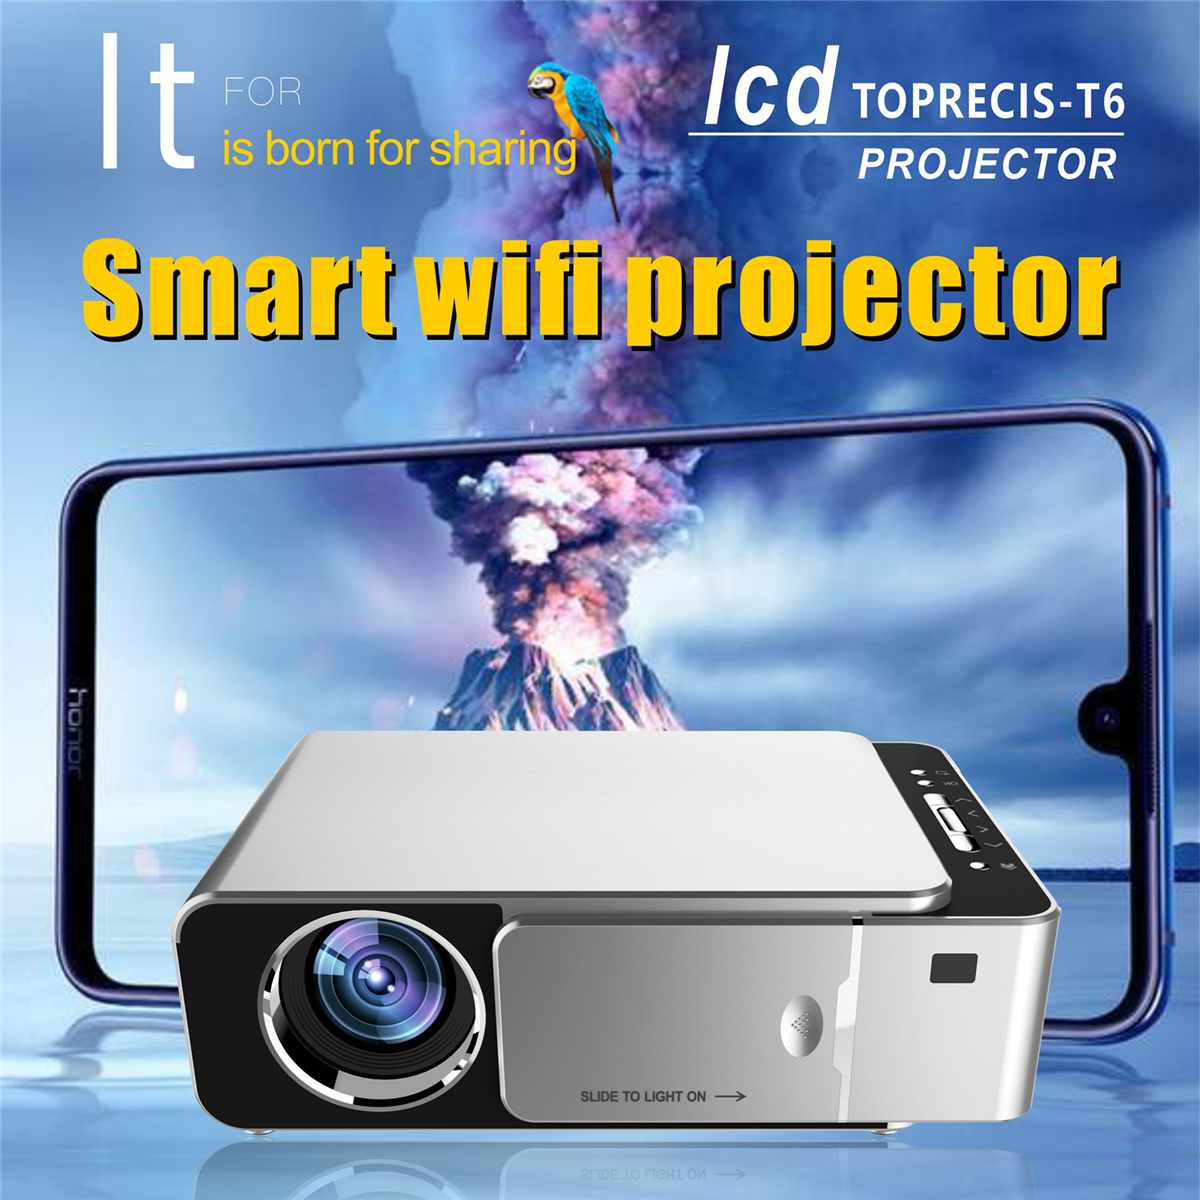 3D LED Projector 1280*720 Portable HD Mobile Phone Wireless Home Theater HDMI/USB/SD Remote Control Home Theatre Projector 70W